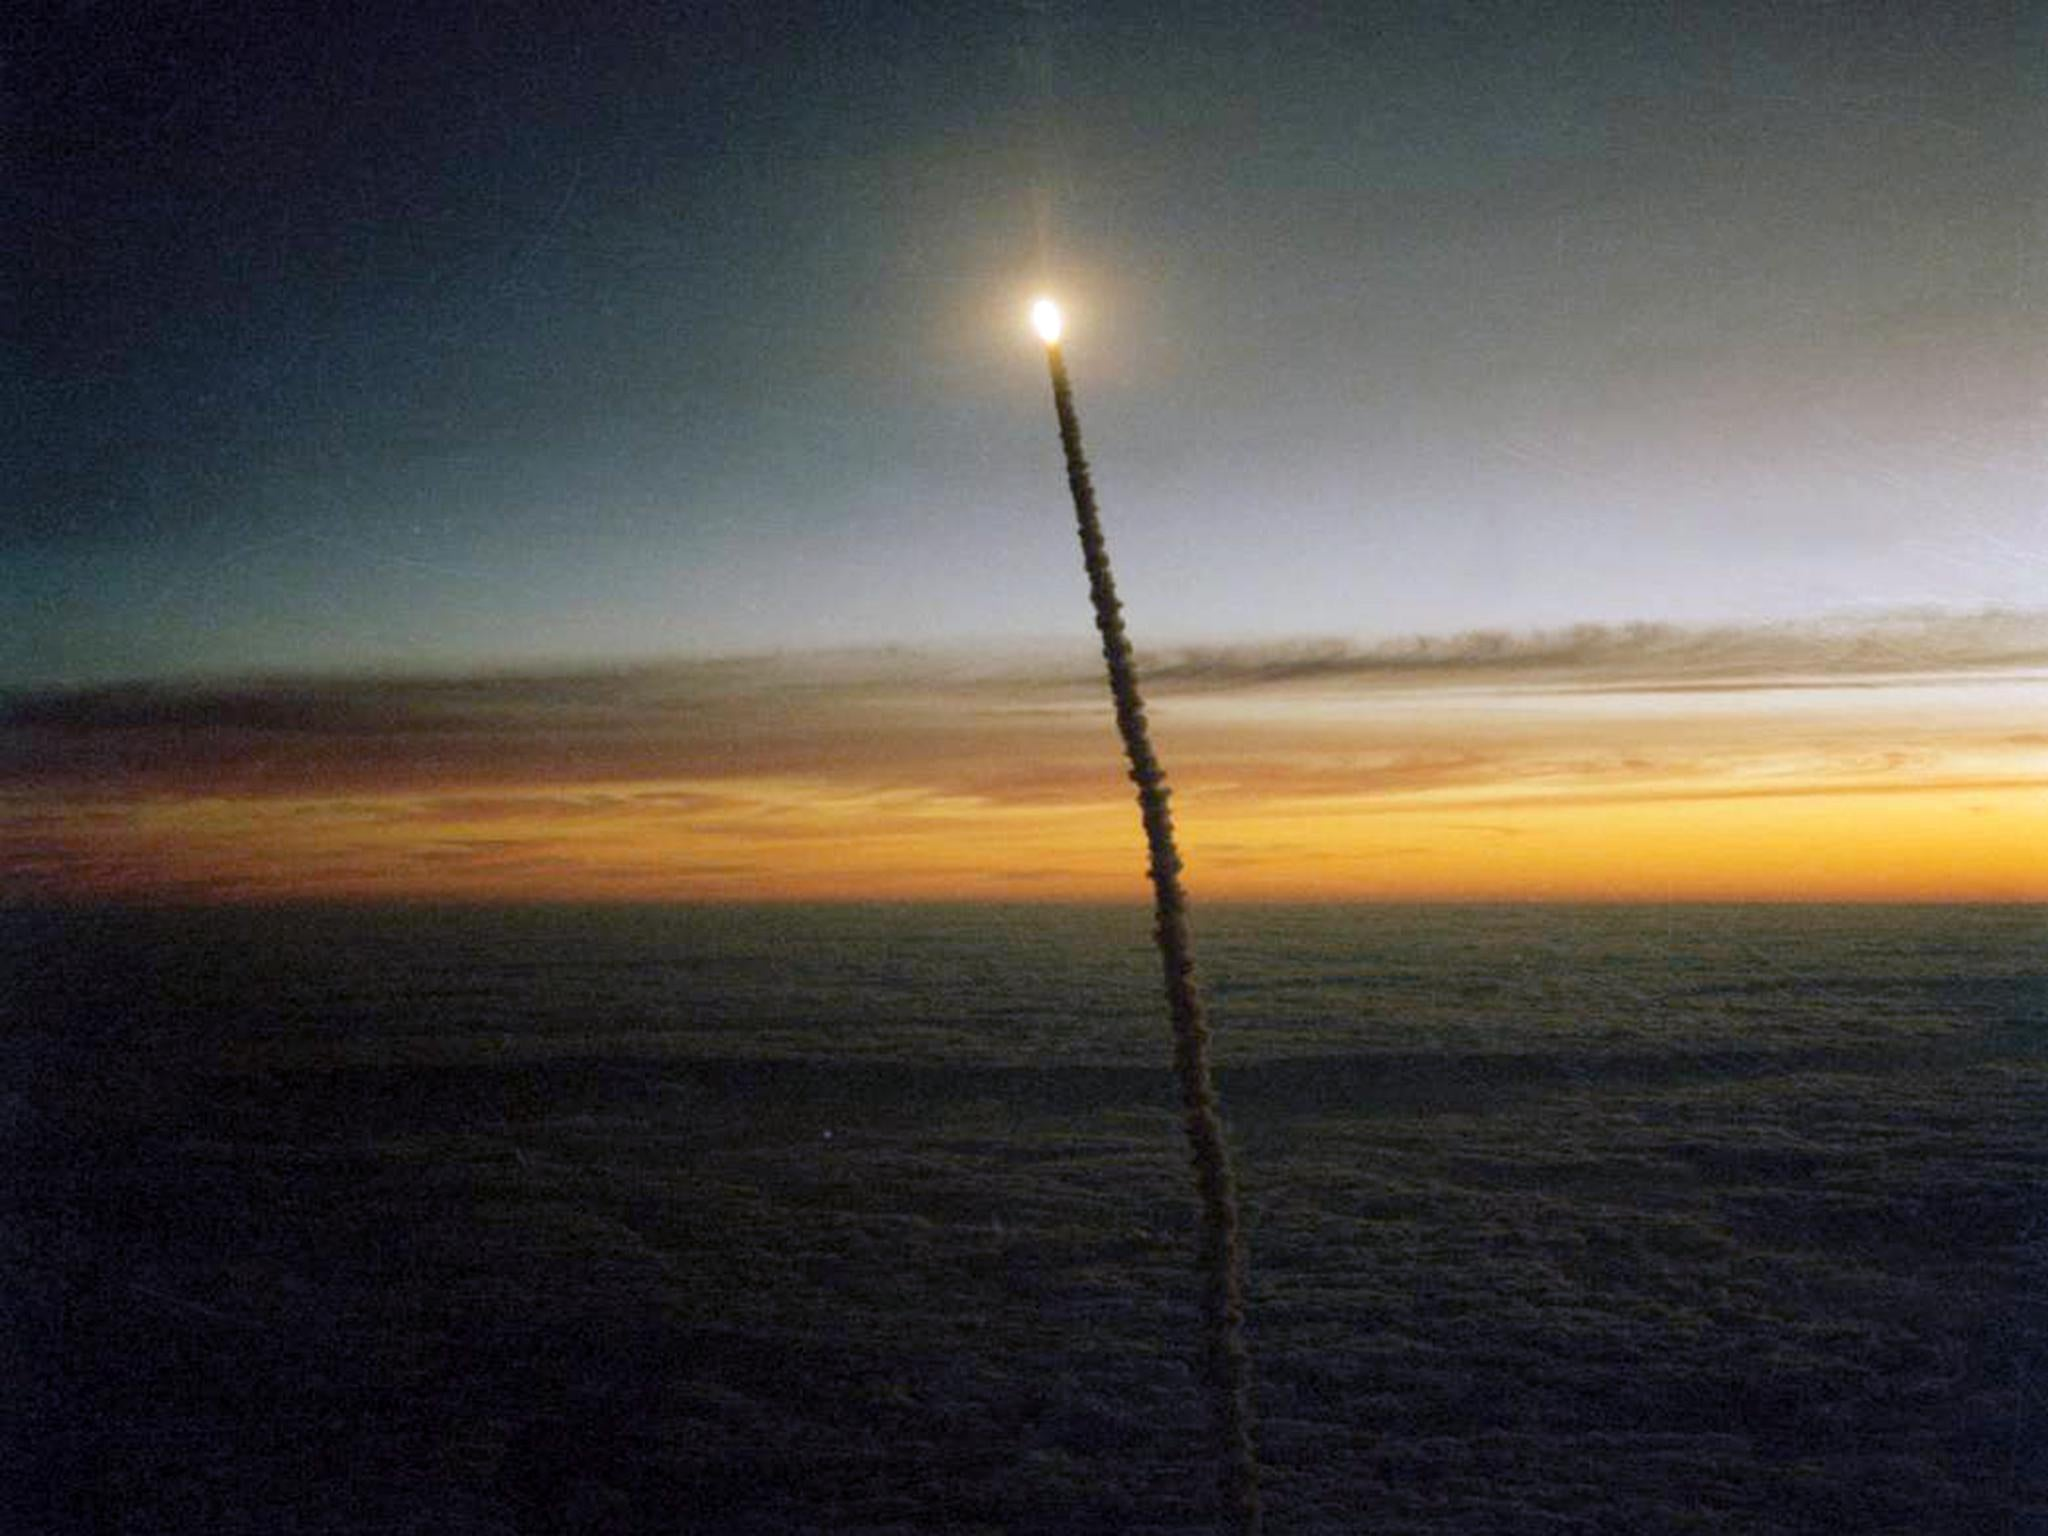 Launch of History - Making STS-41G Mission in 1984